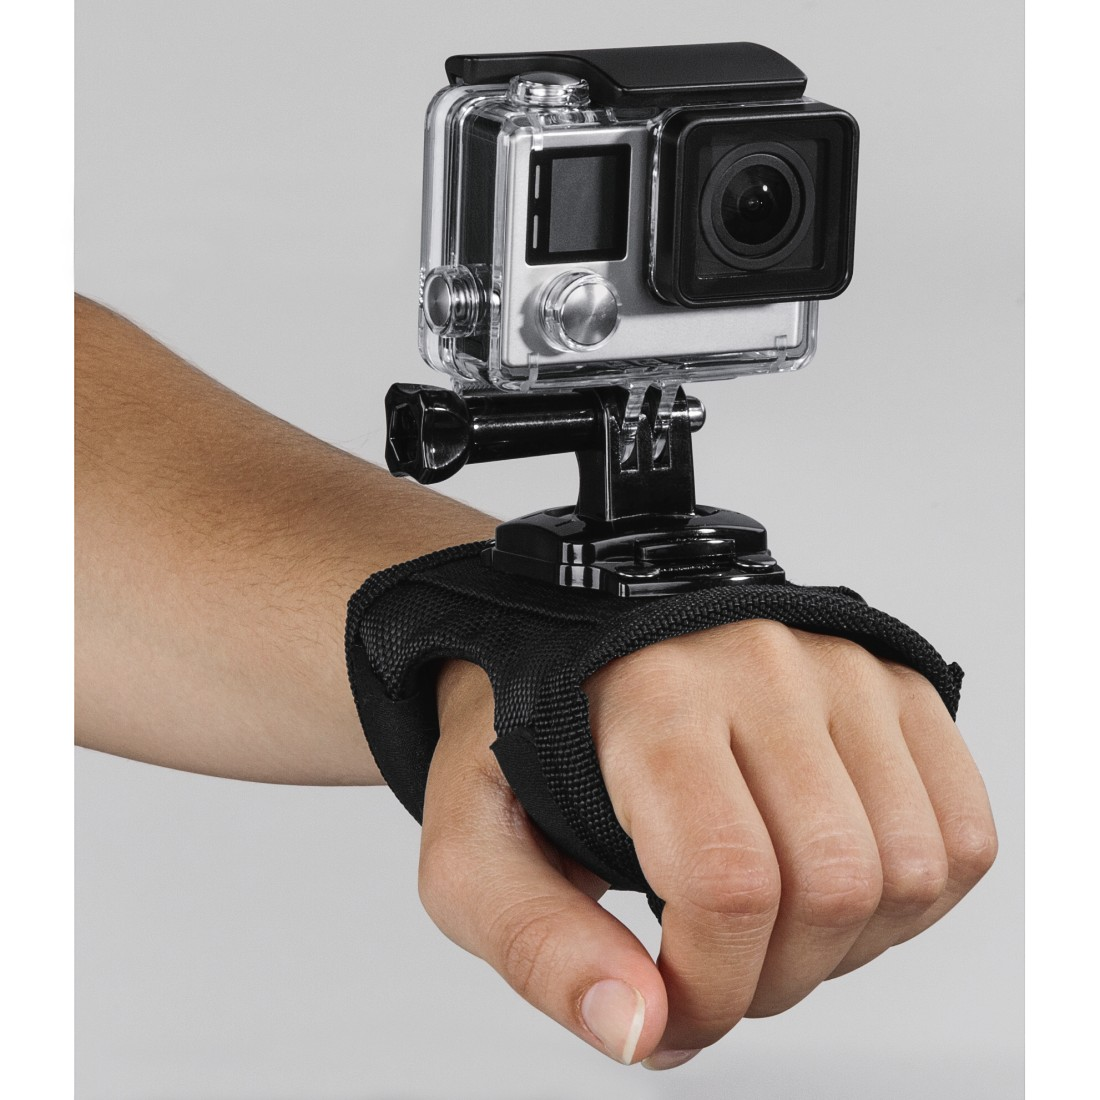 awx2 High-Res Appliance 2 - Hama, Wrist Strap 105 for GoPro, L, 360°